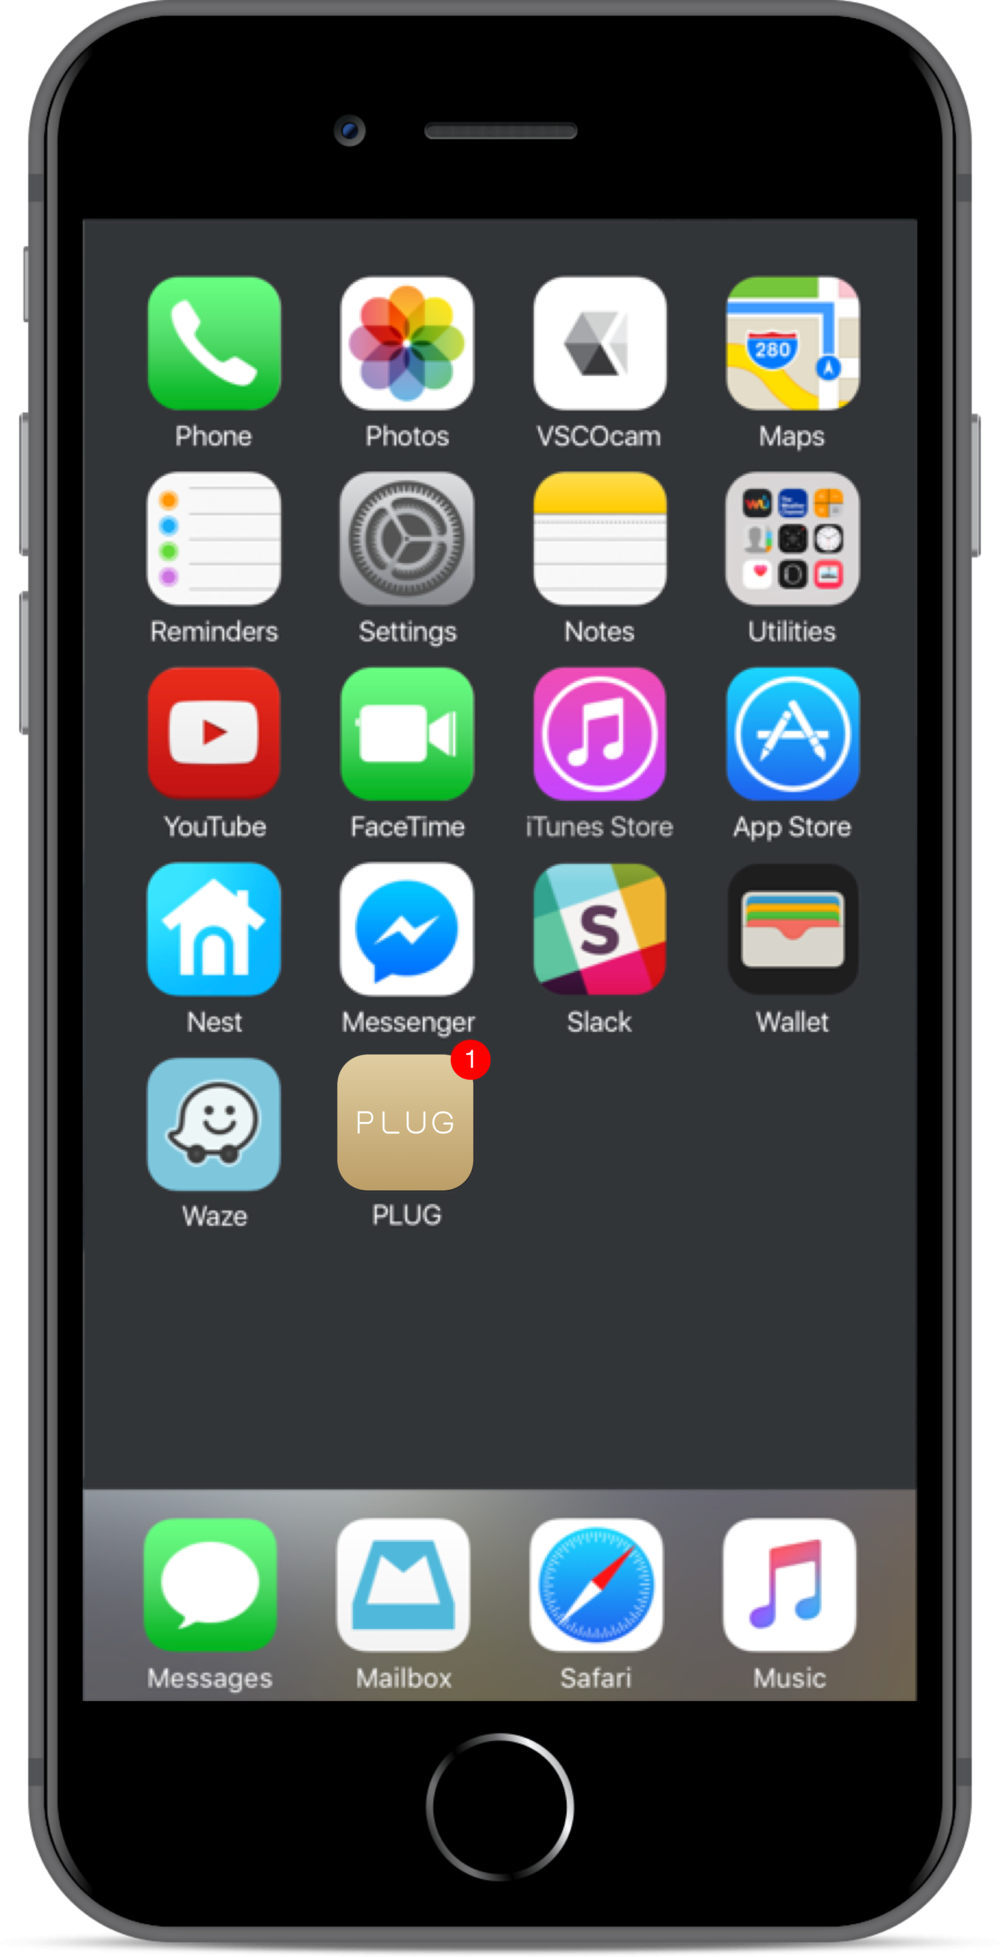 Veronica taps on the conspicuous PLUG app icon on her home screen to launch the app. (The gold color represents the seamless connectivity that PLUG helps facilitate.)